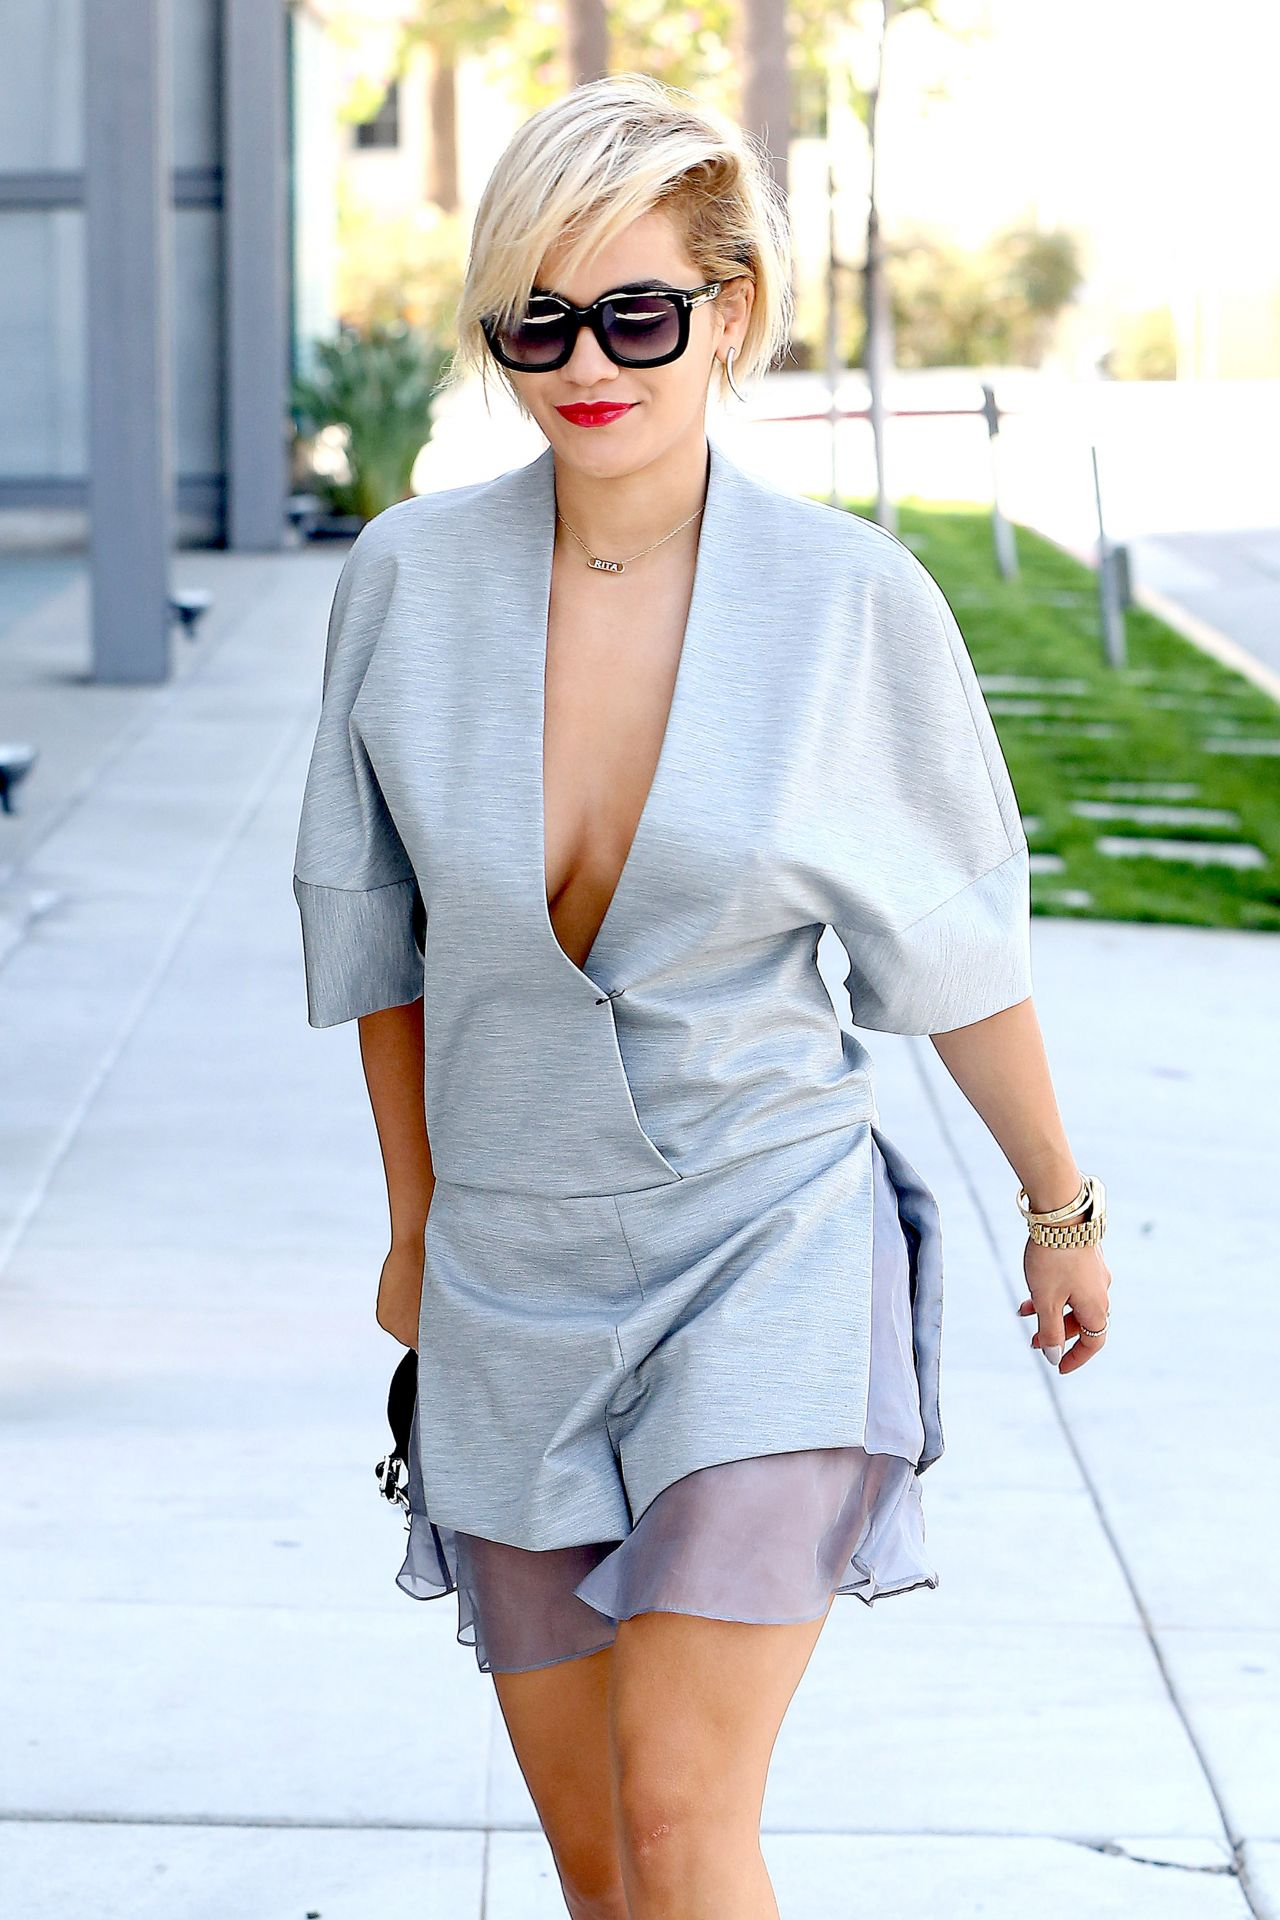 Rita Ora Out in Los Angeles - March 2014